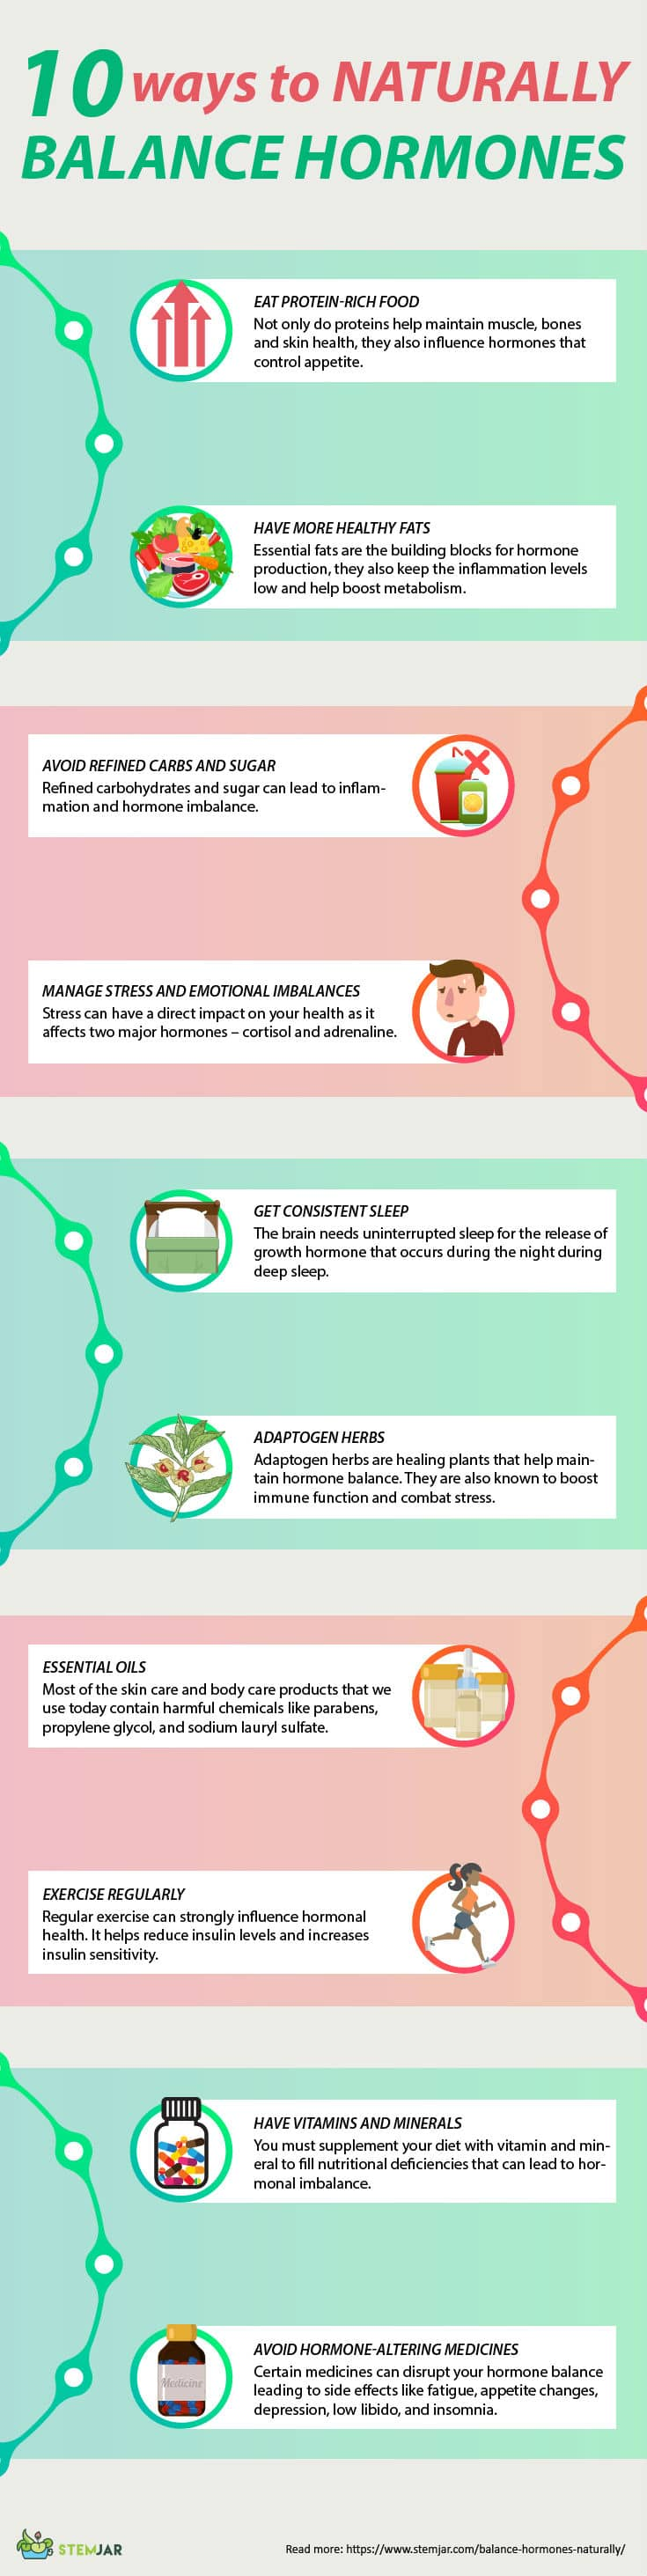 balance hormones naturally infographic